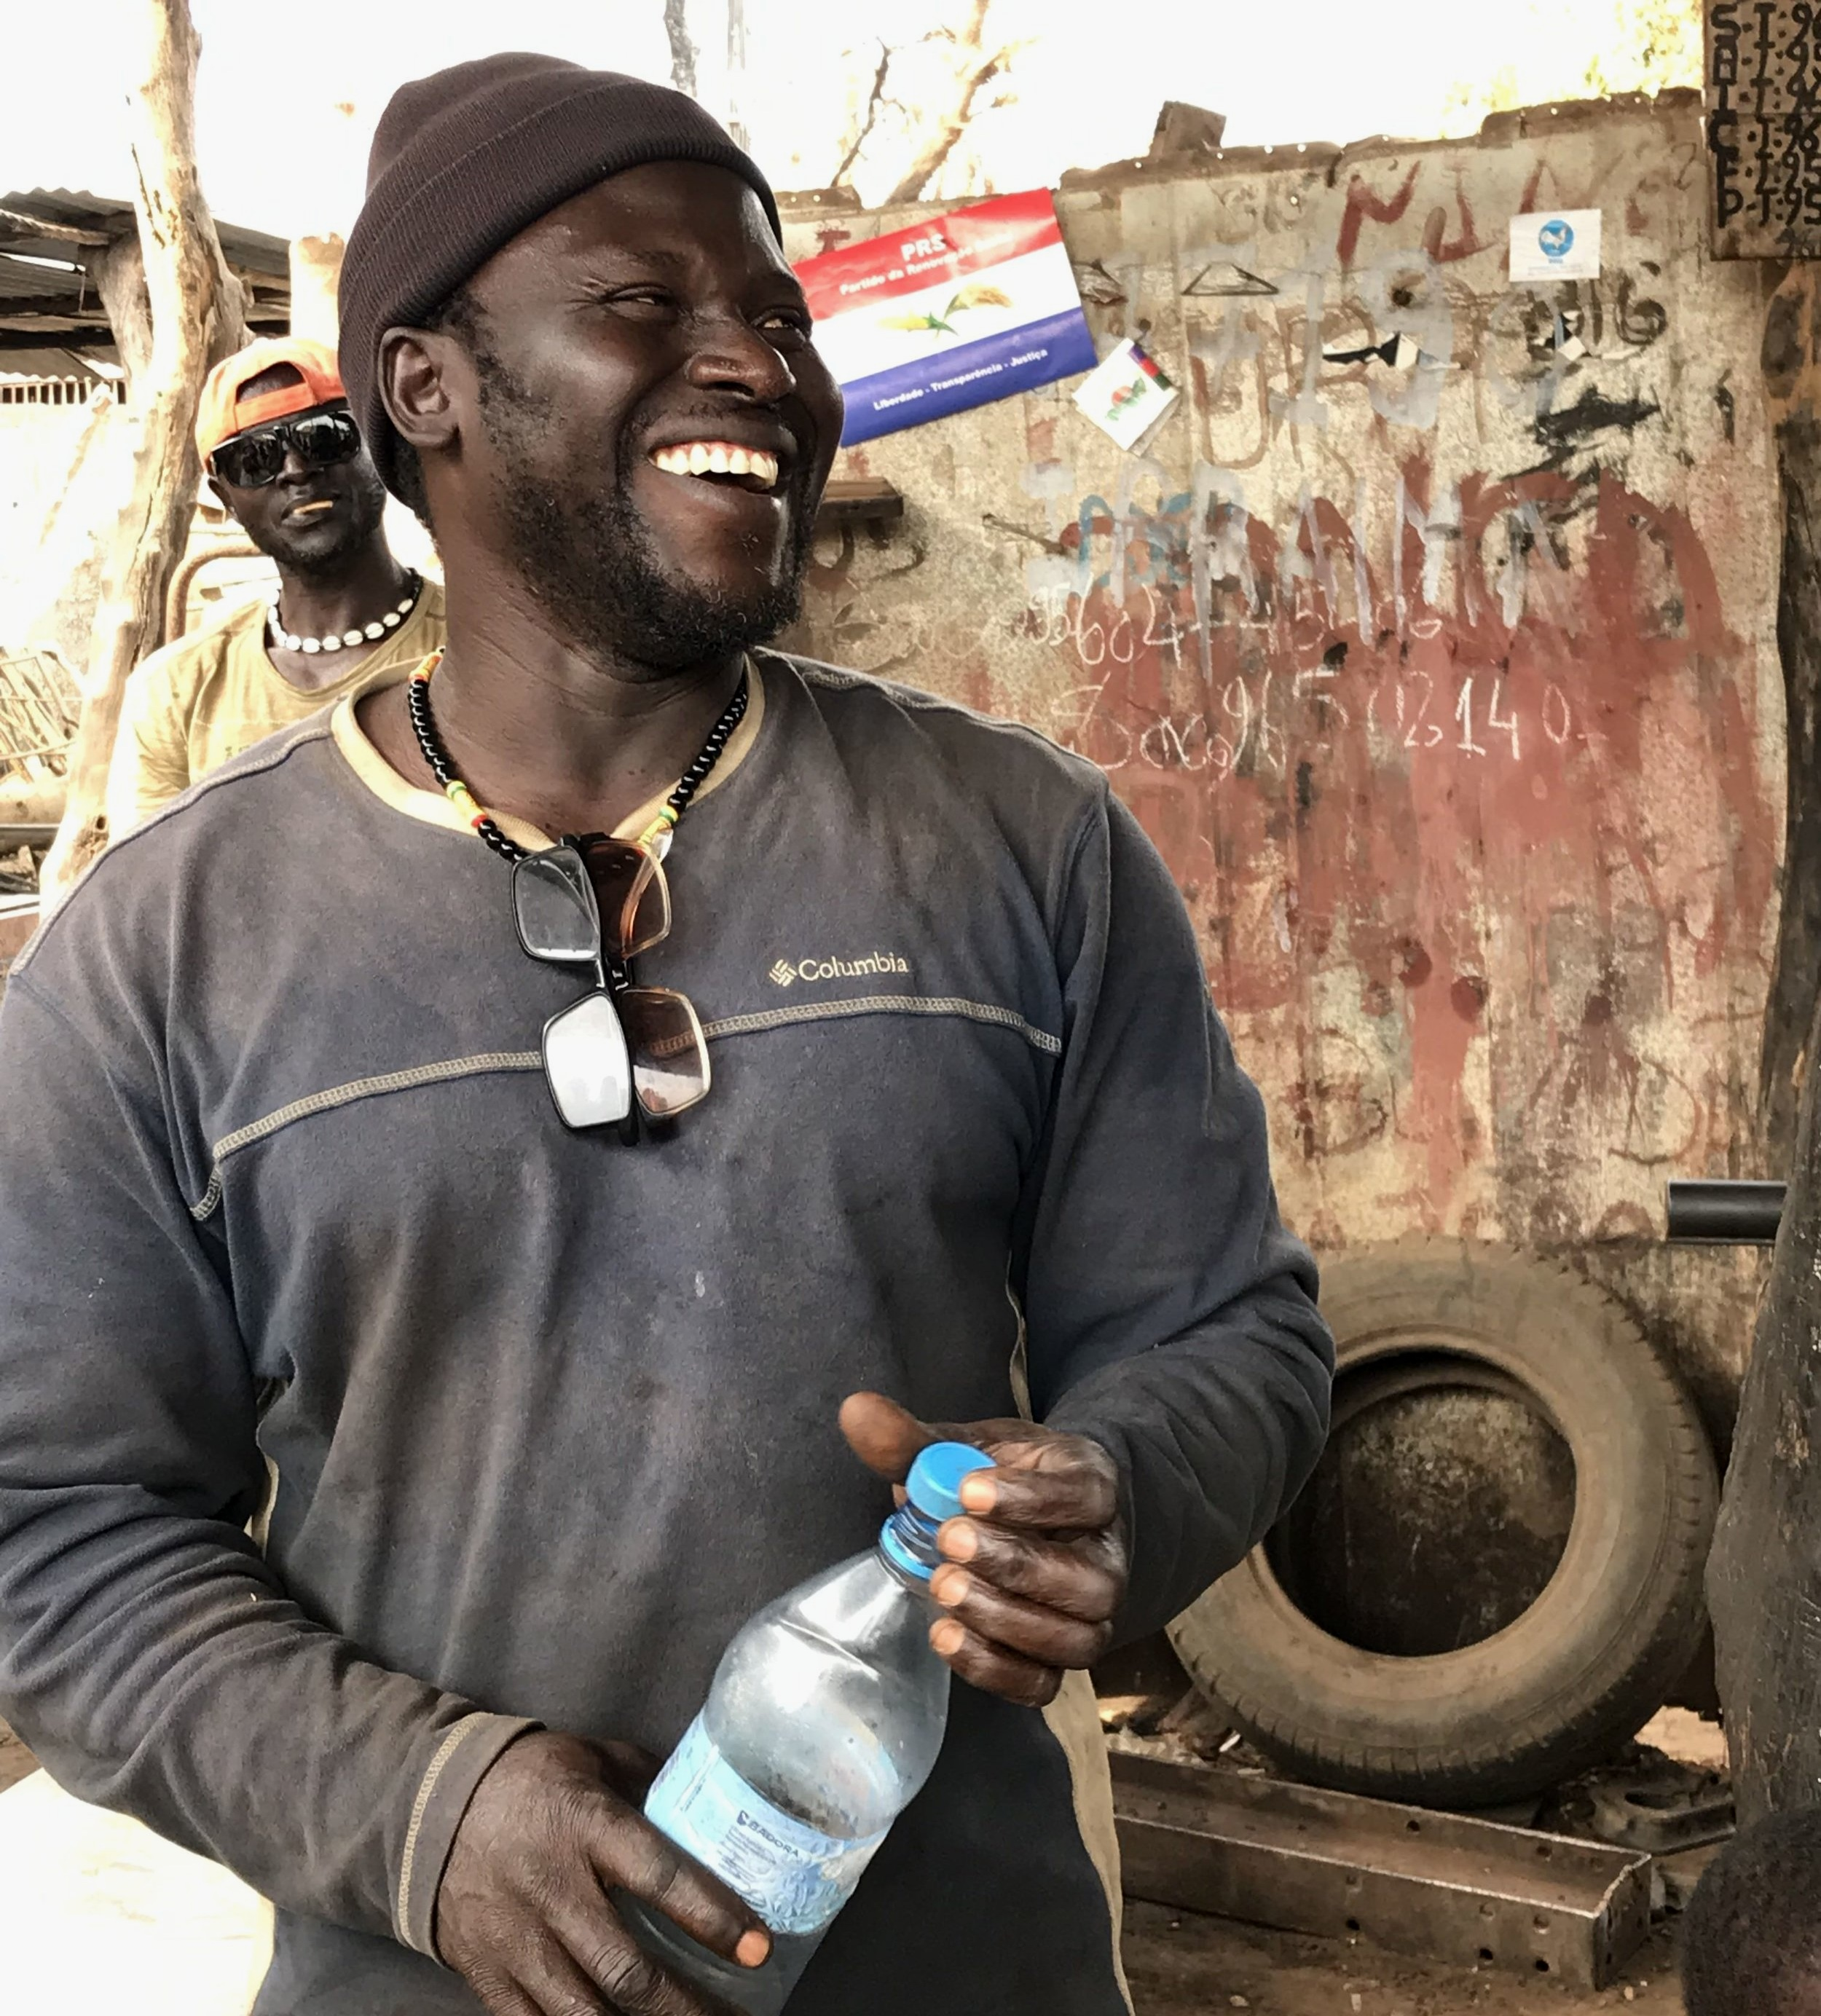 Ciro had never received any formal training as a welder. After studying at the WAVS Vocational School, he was able to grow his business by taking on more types of welding jobs.